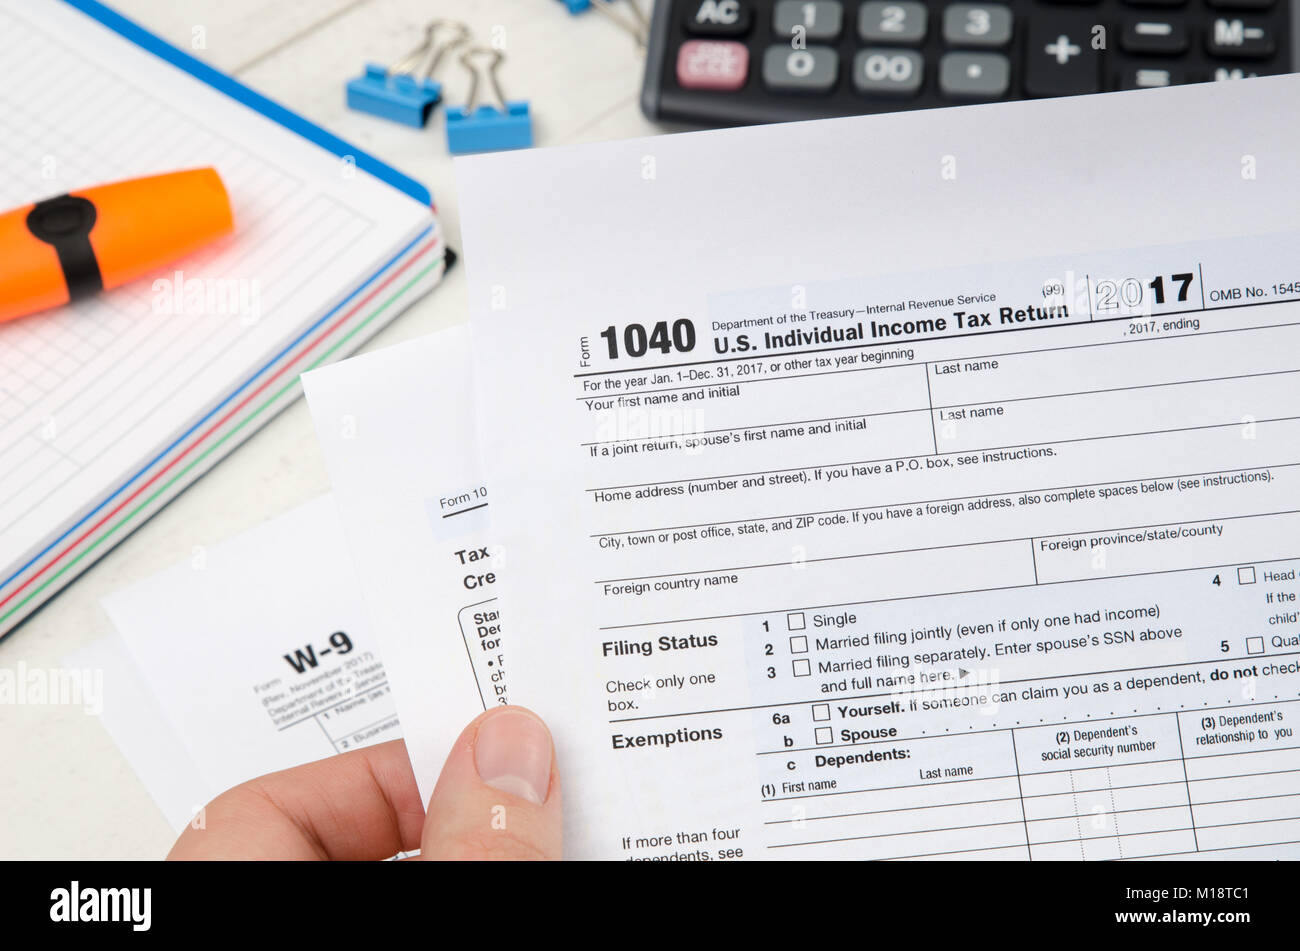 1040 tax form stock photos 1040 tax form stock images alamy man holding us tax form 1040 tax form law document irs business concept stock falaconquin